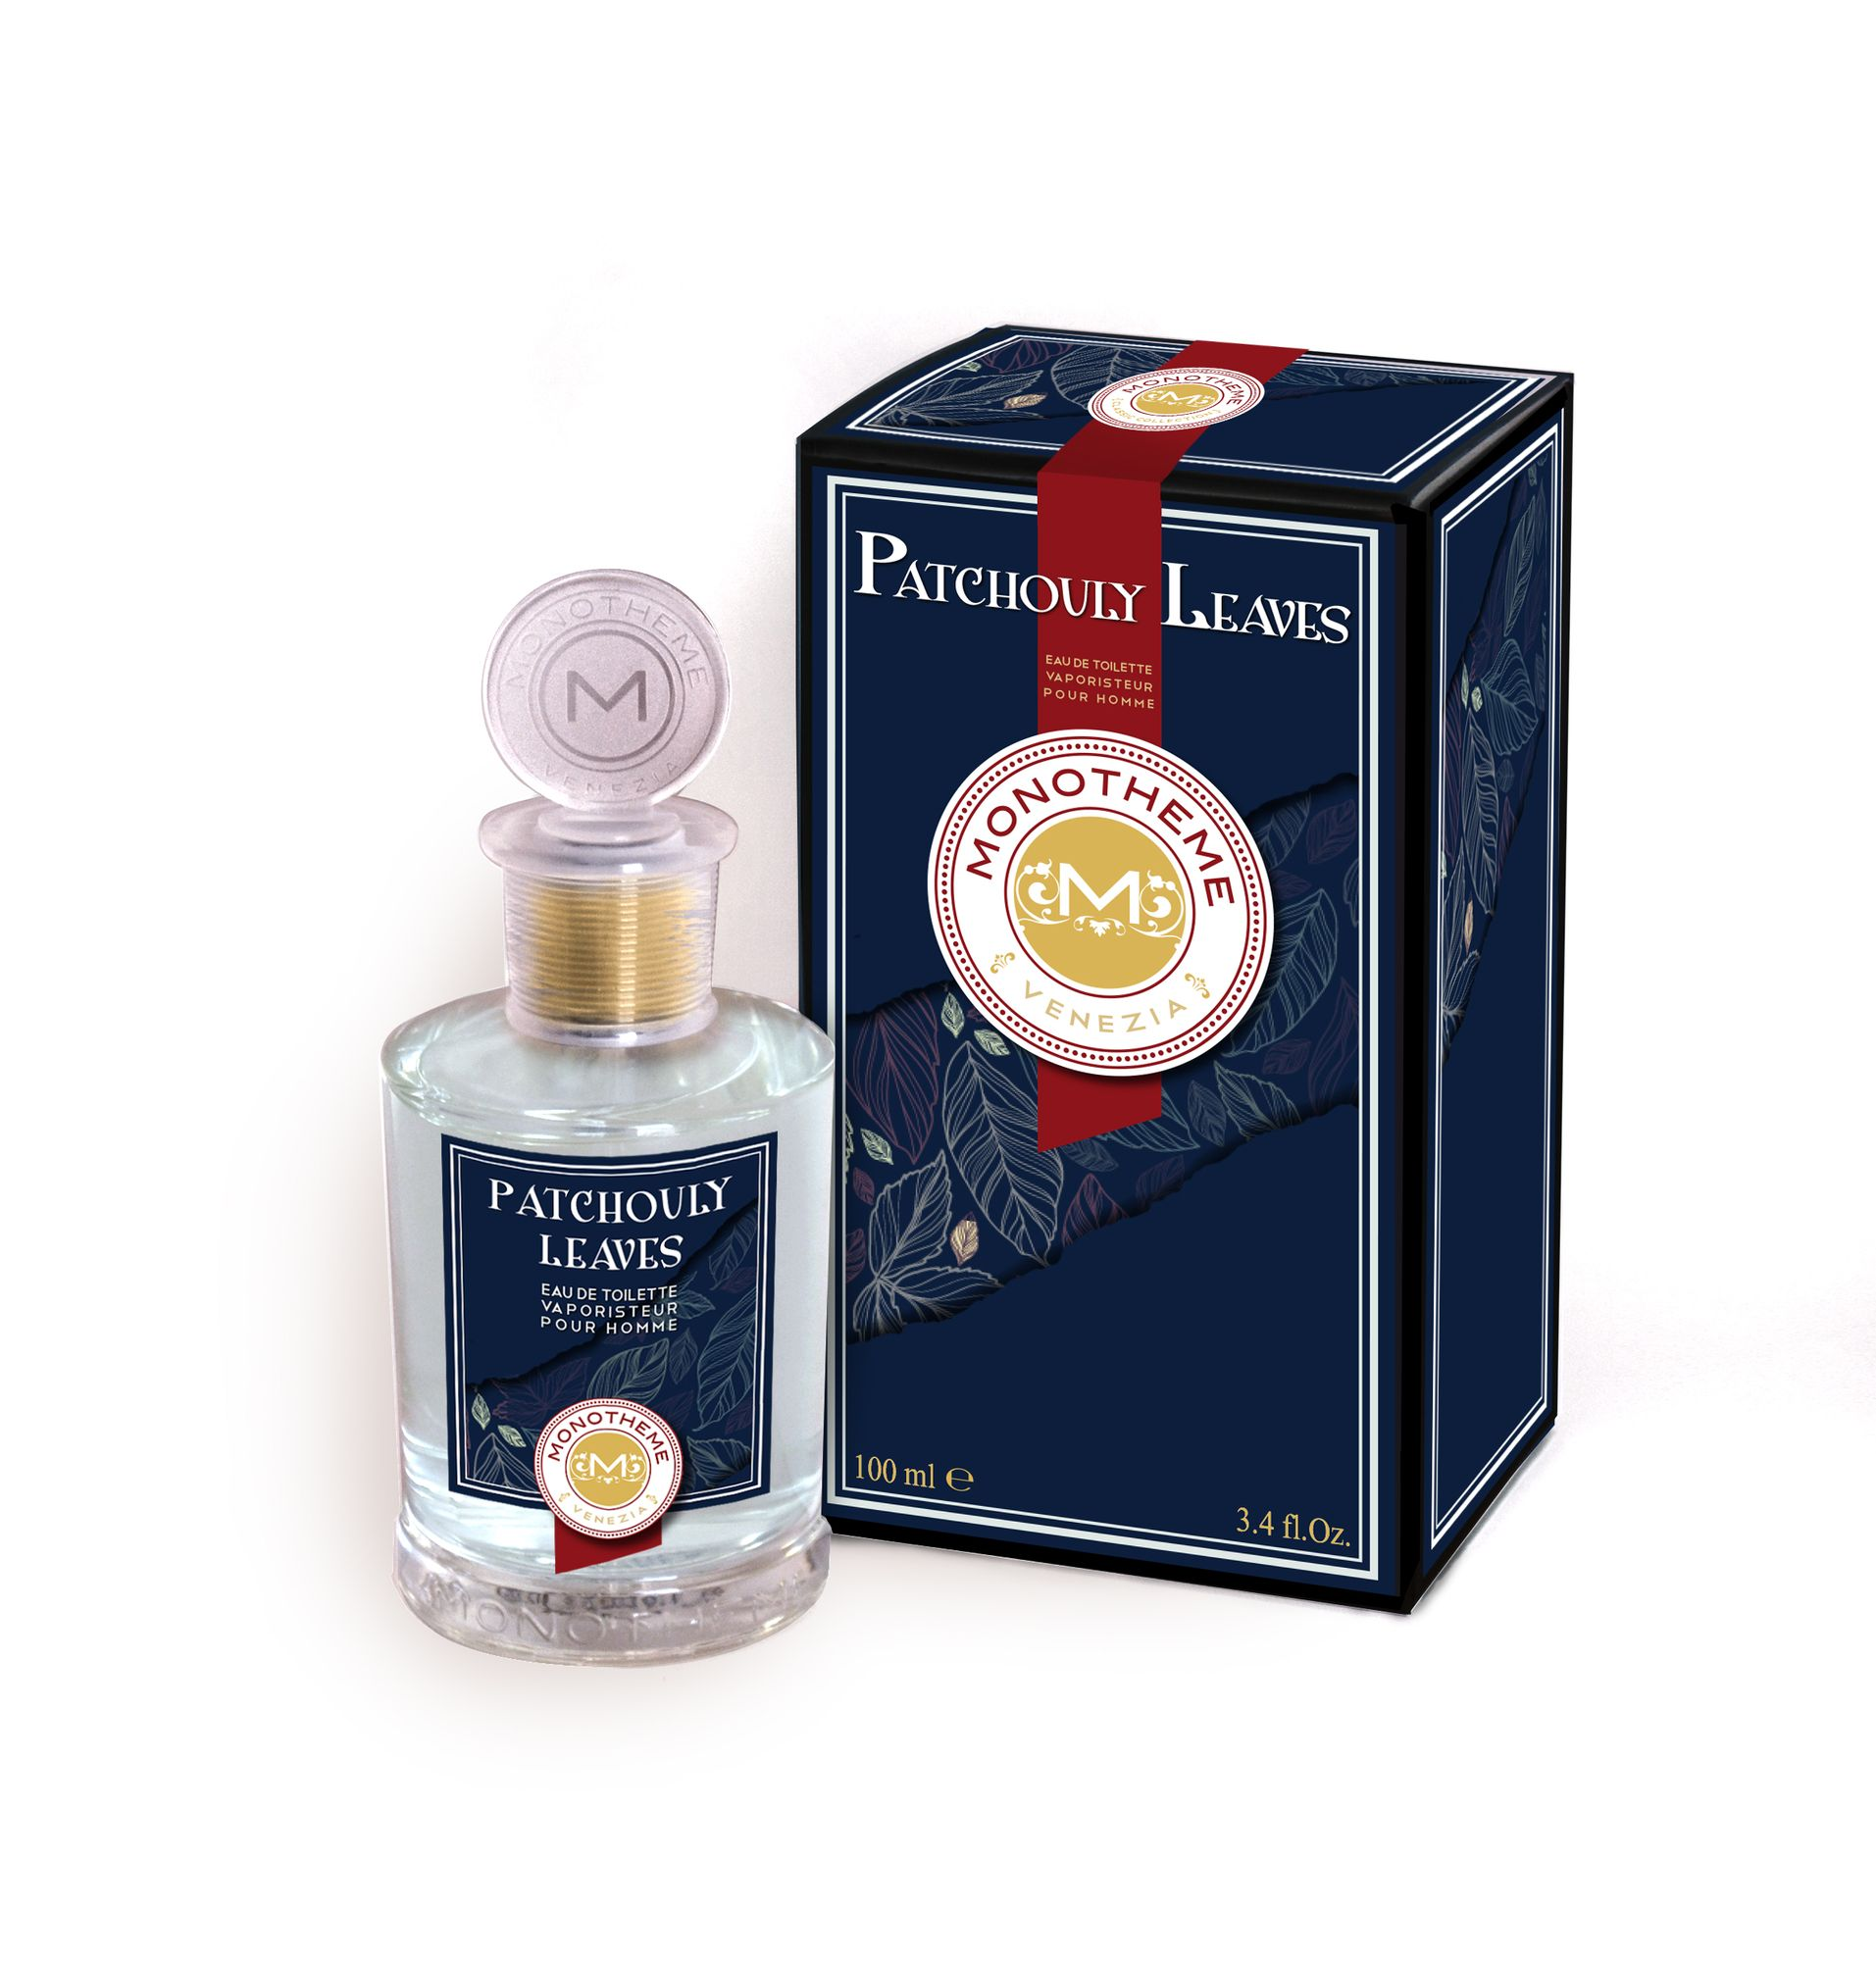 MONOTHEME PATCHOULY LEAVES EDT 100ML